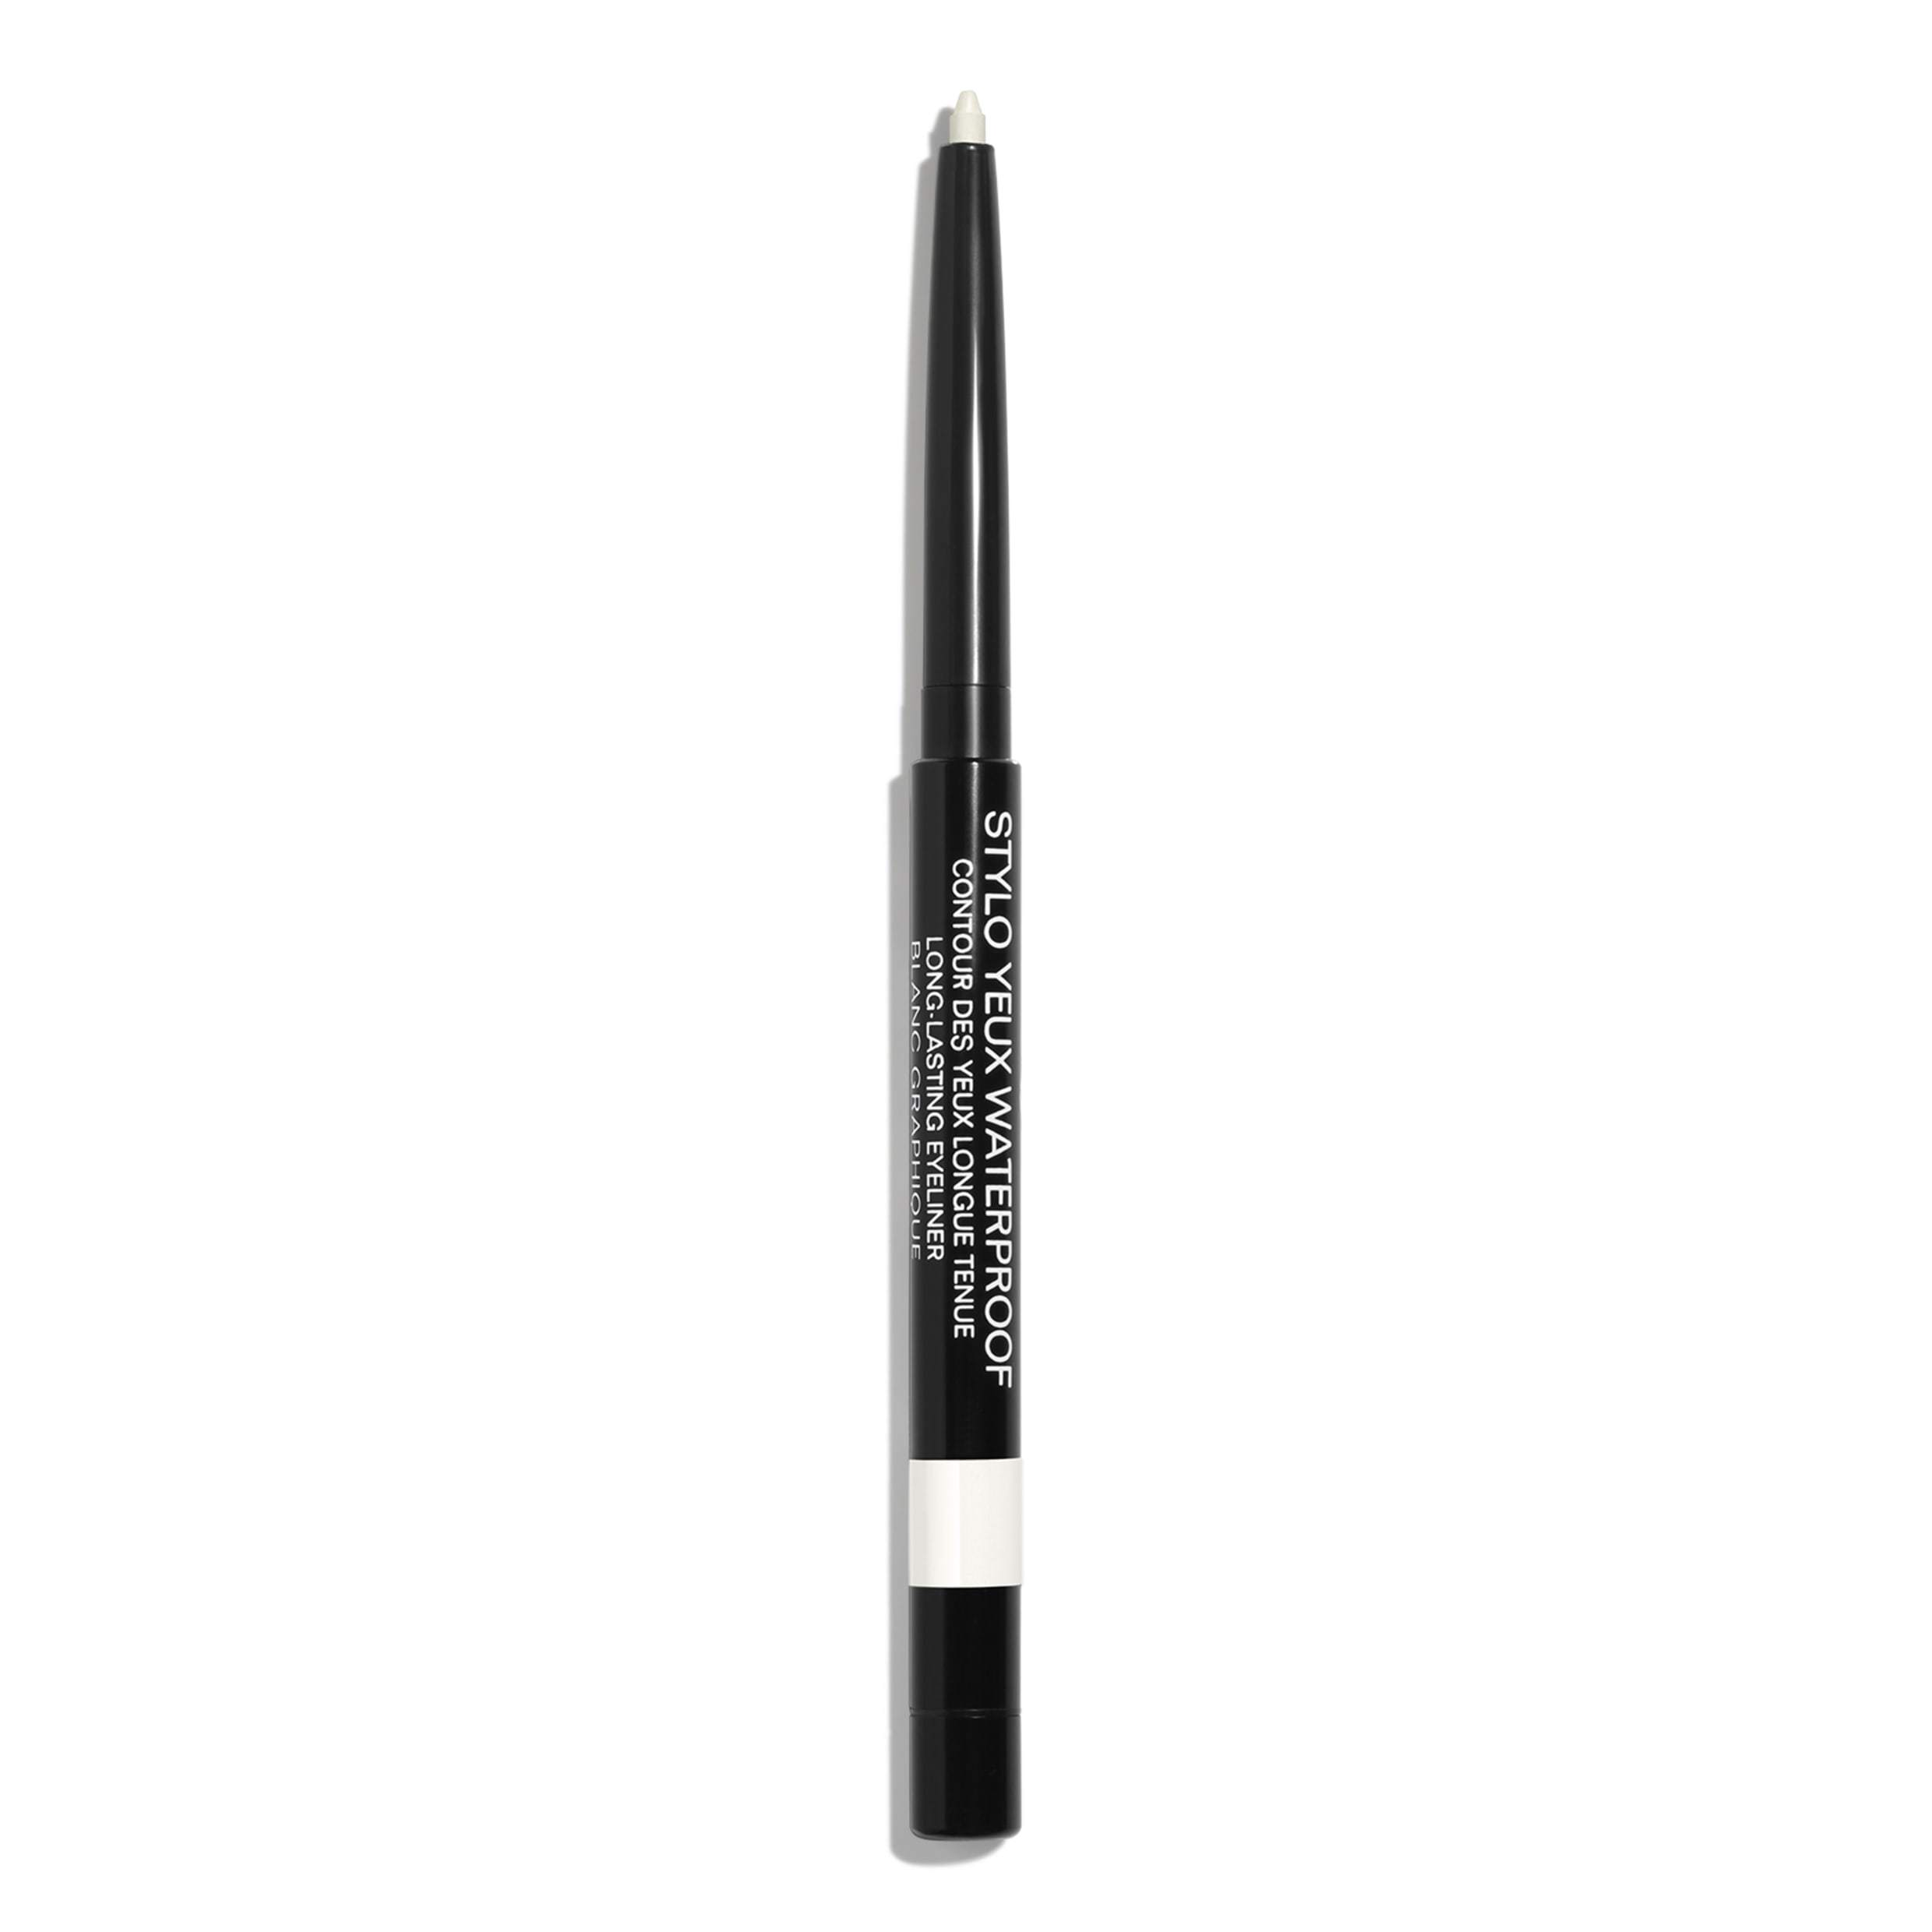 Chanel Stylo Yeux Waterproof Long-Lasting Eyeliner Blanc Graphique 949